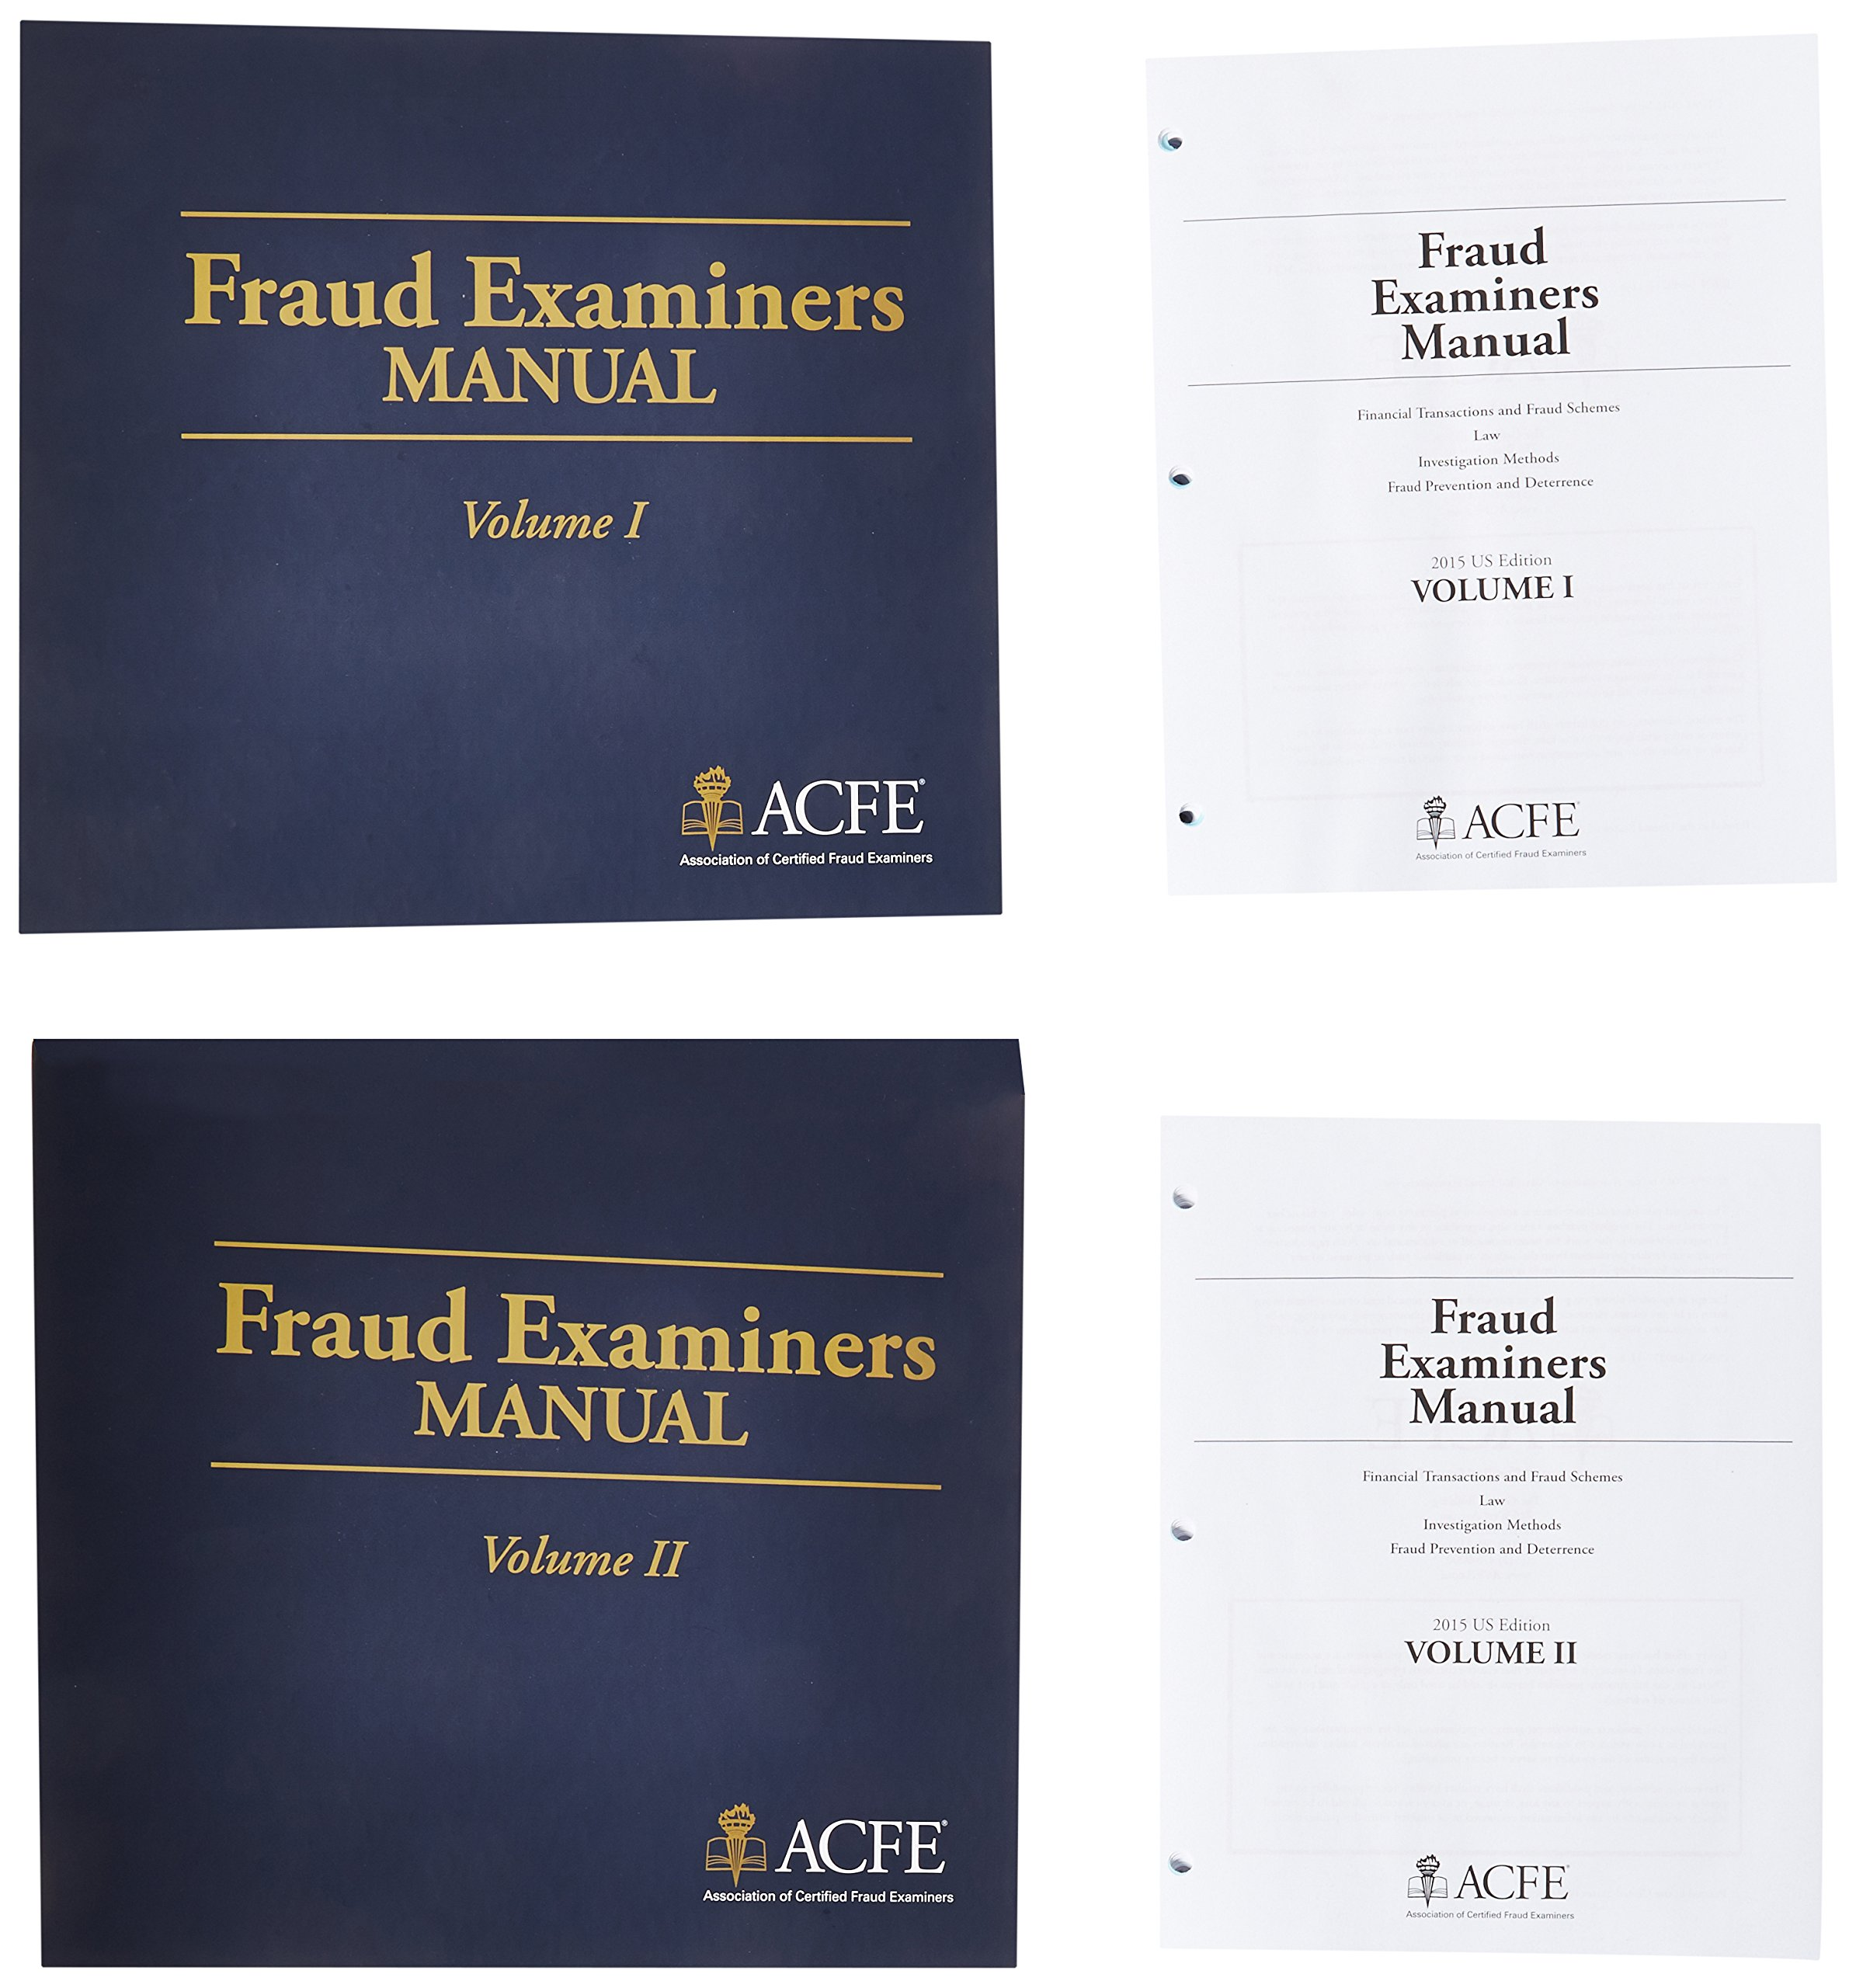 Amazon.in: Buy Fraud Examiners Manual Book Online at Low Prices in India | Fraud  Examiners Manual Reviews & Ratings